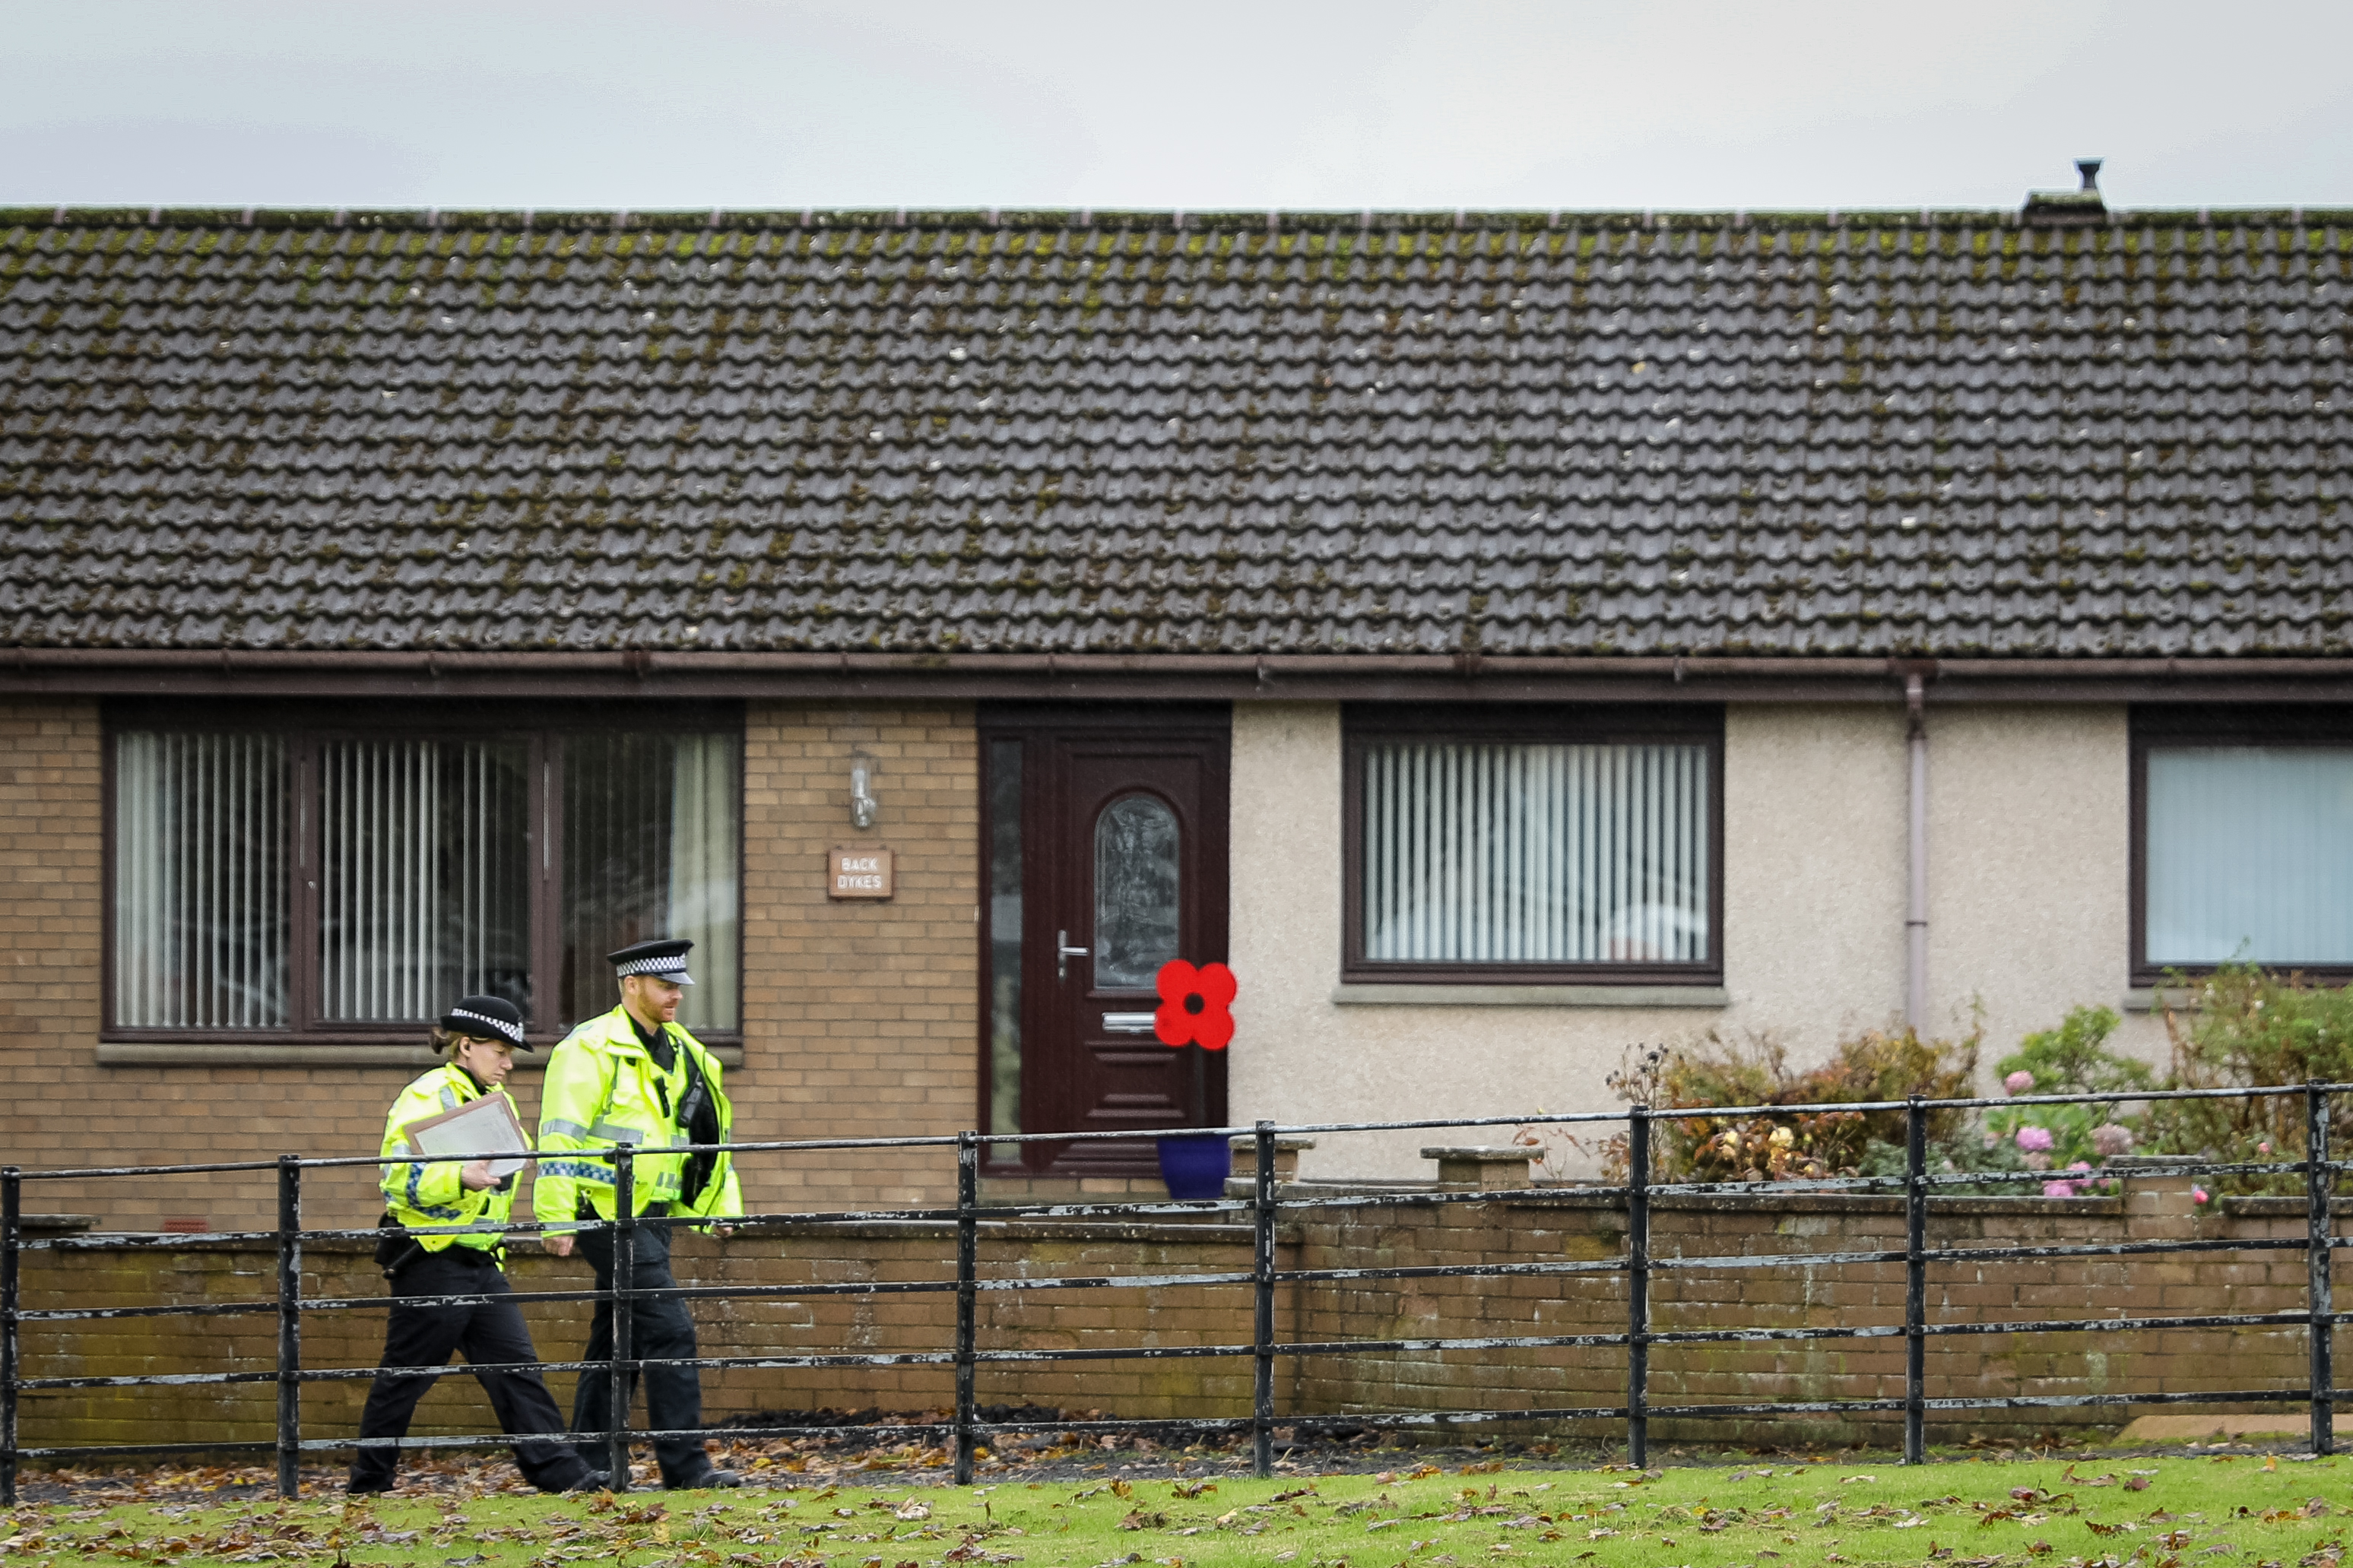 Police are continuing to investigate the death in Kinglassie